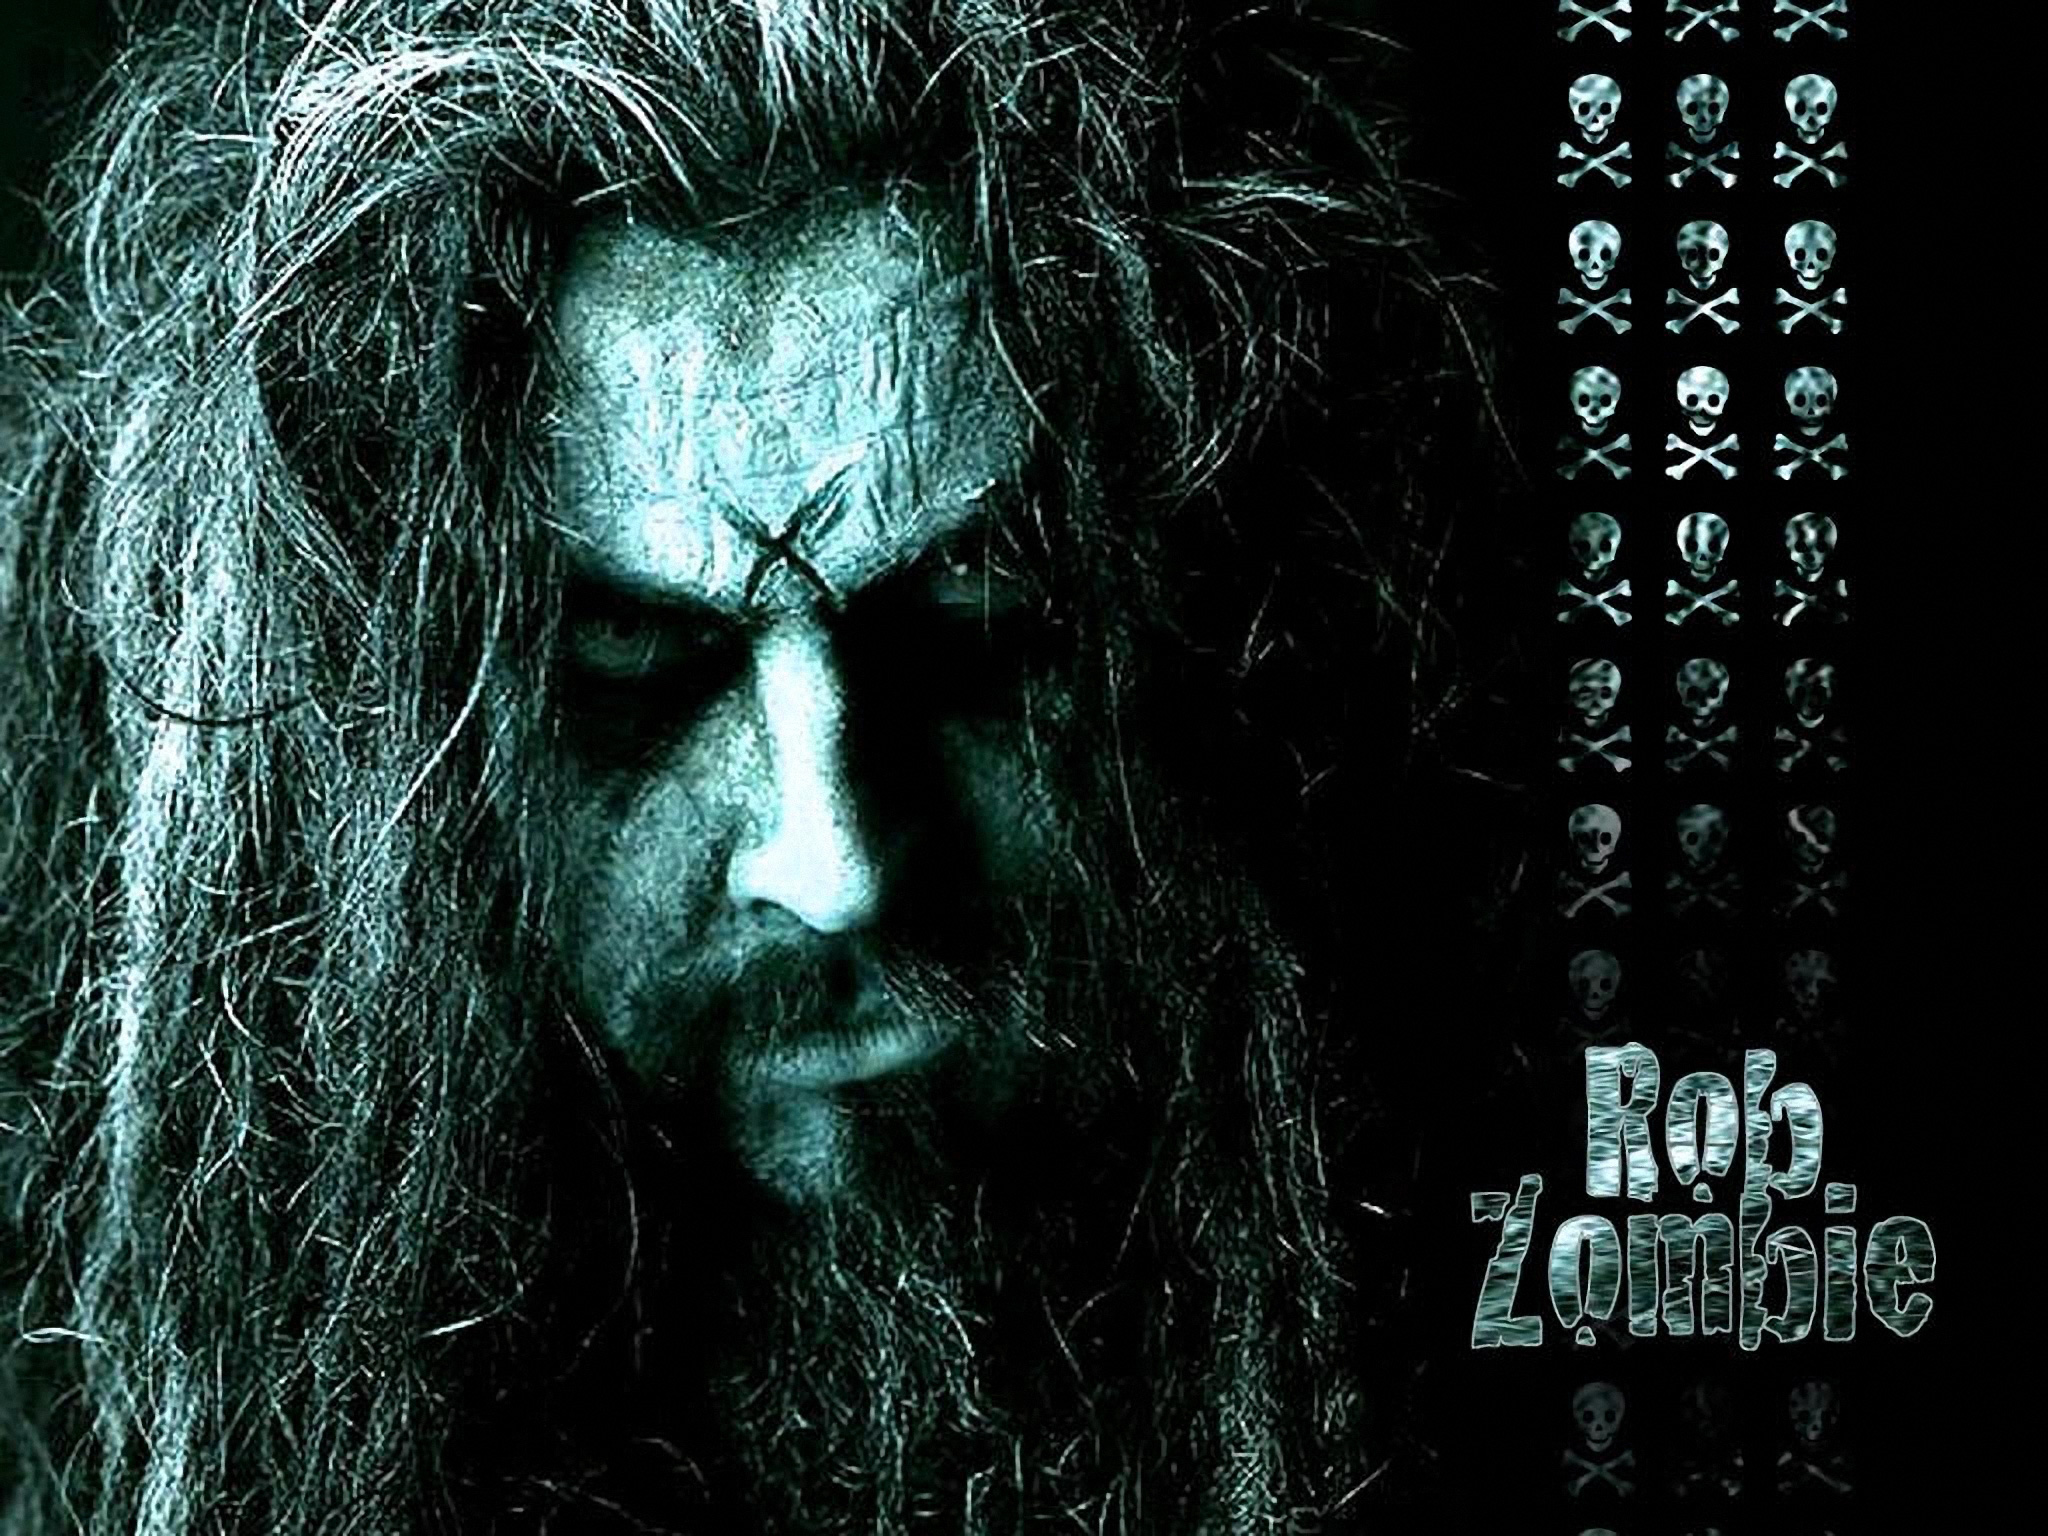 Hd wallpaper zombie - Hd Wallpaper Background Id 182641 2048x1536 Music Rob Zombie